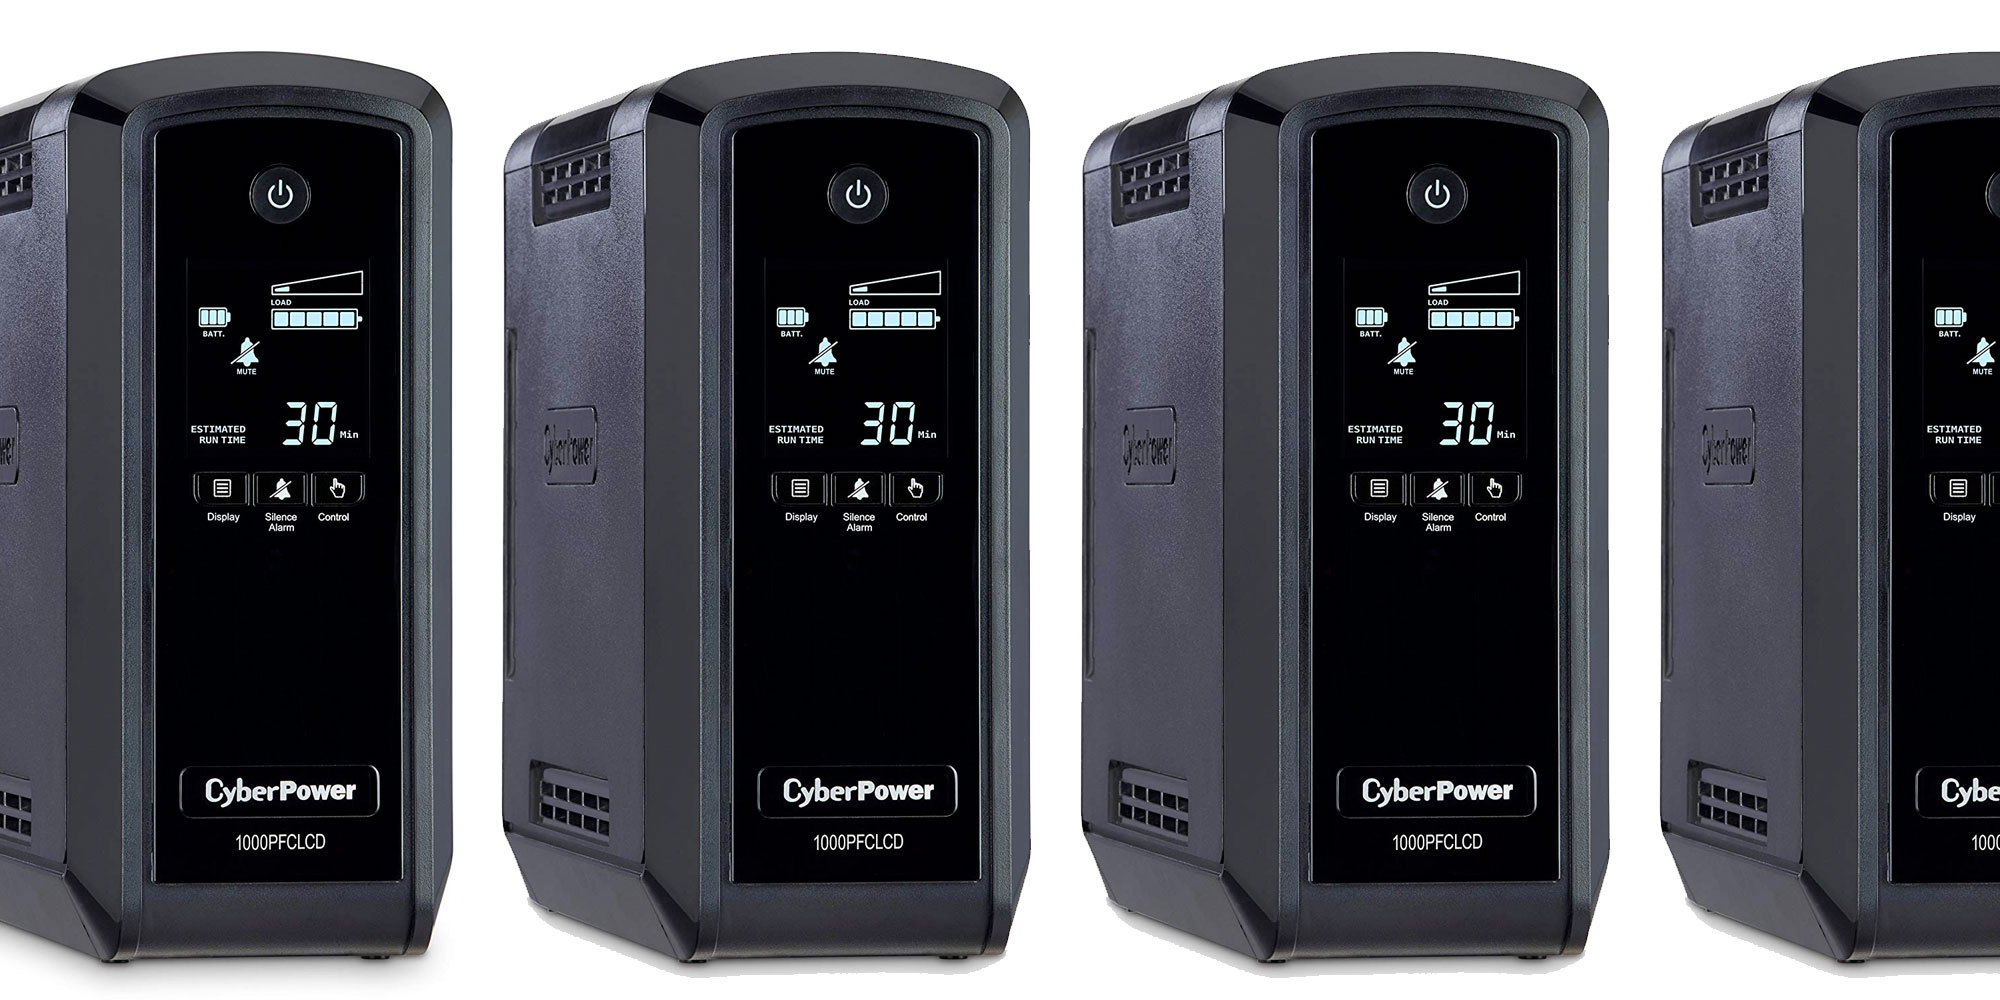 Avoid power outages w/ CyberPower's 1000VA UPS system for $100 shipped (Reg. $160)